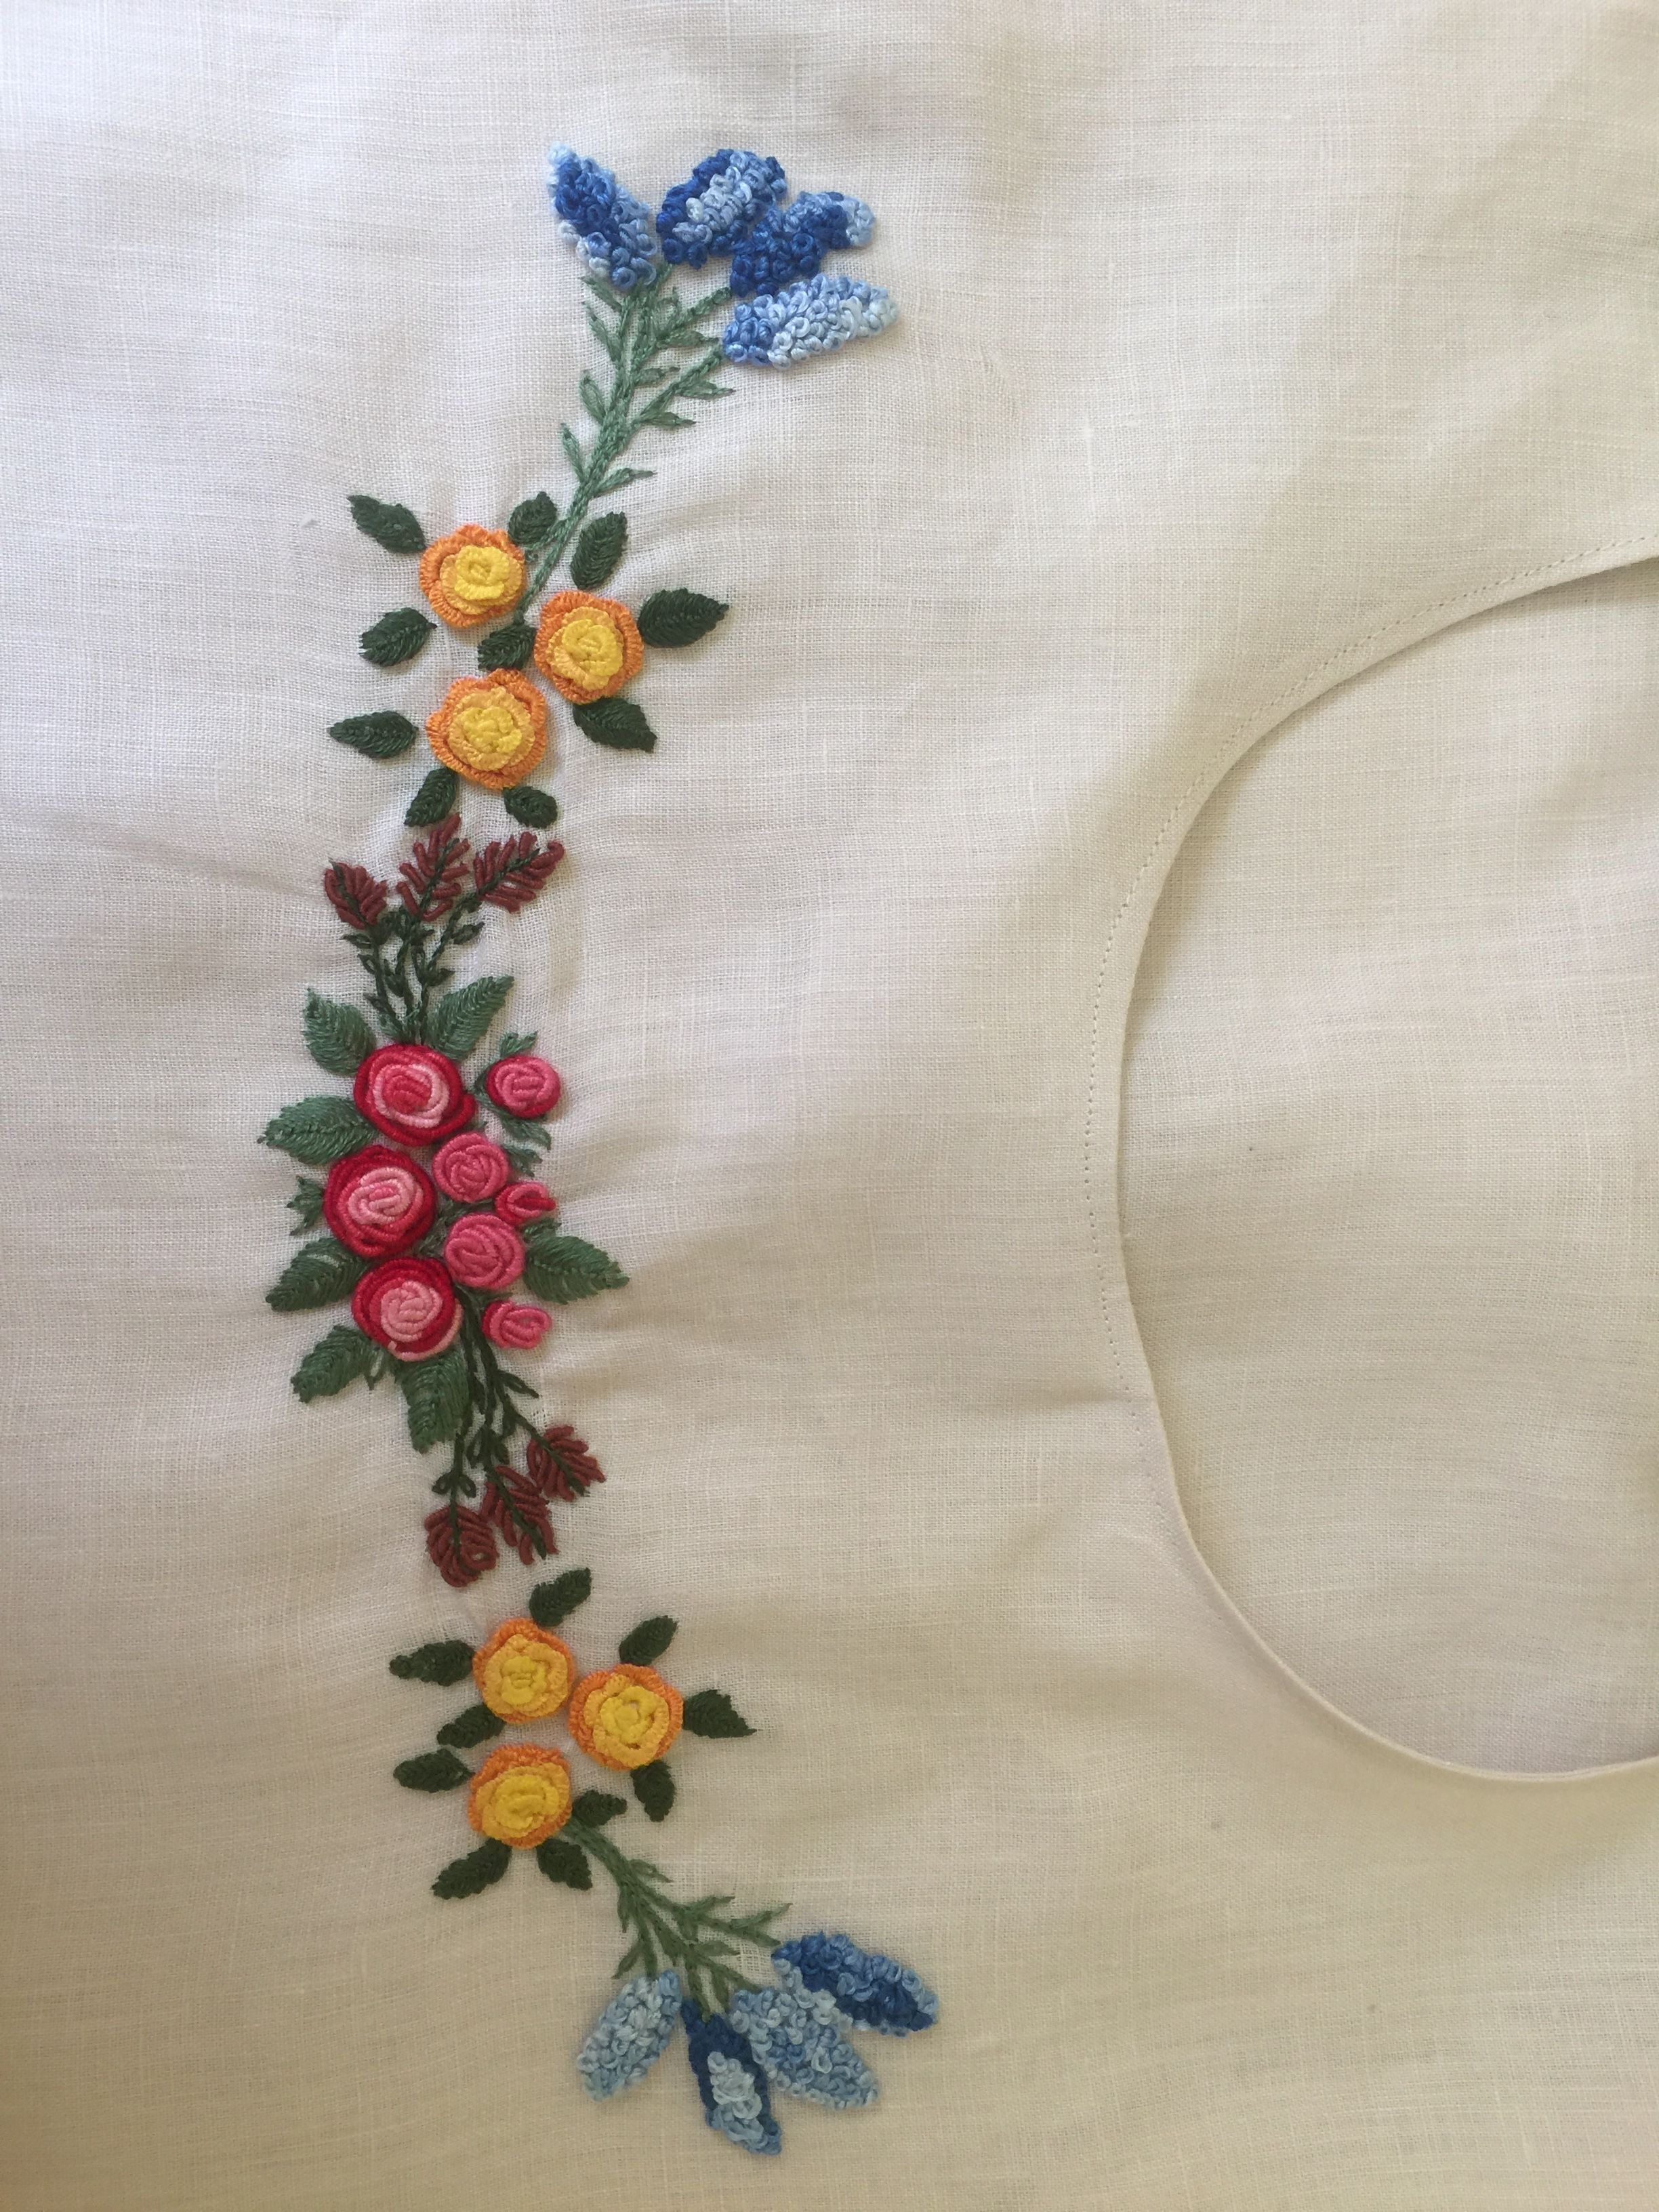 Embroidery on clothes or magic of cross sewing